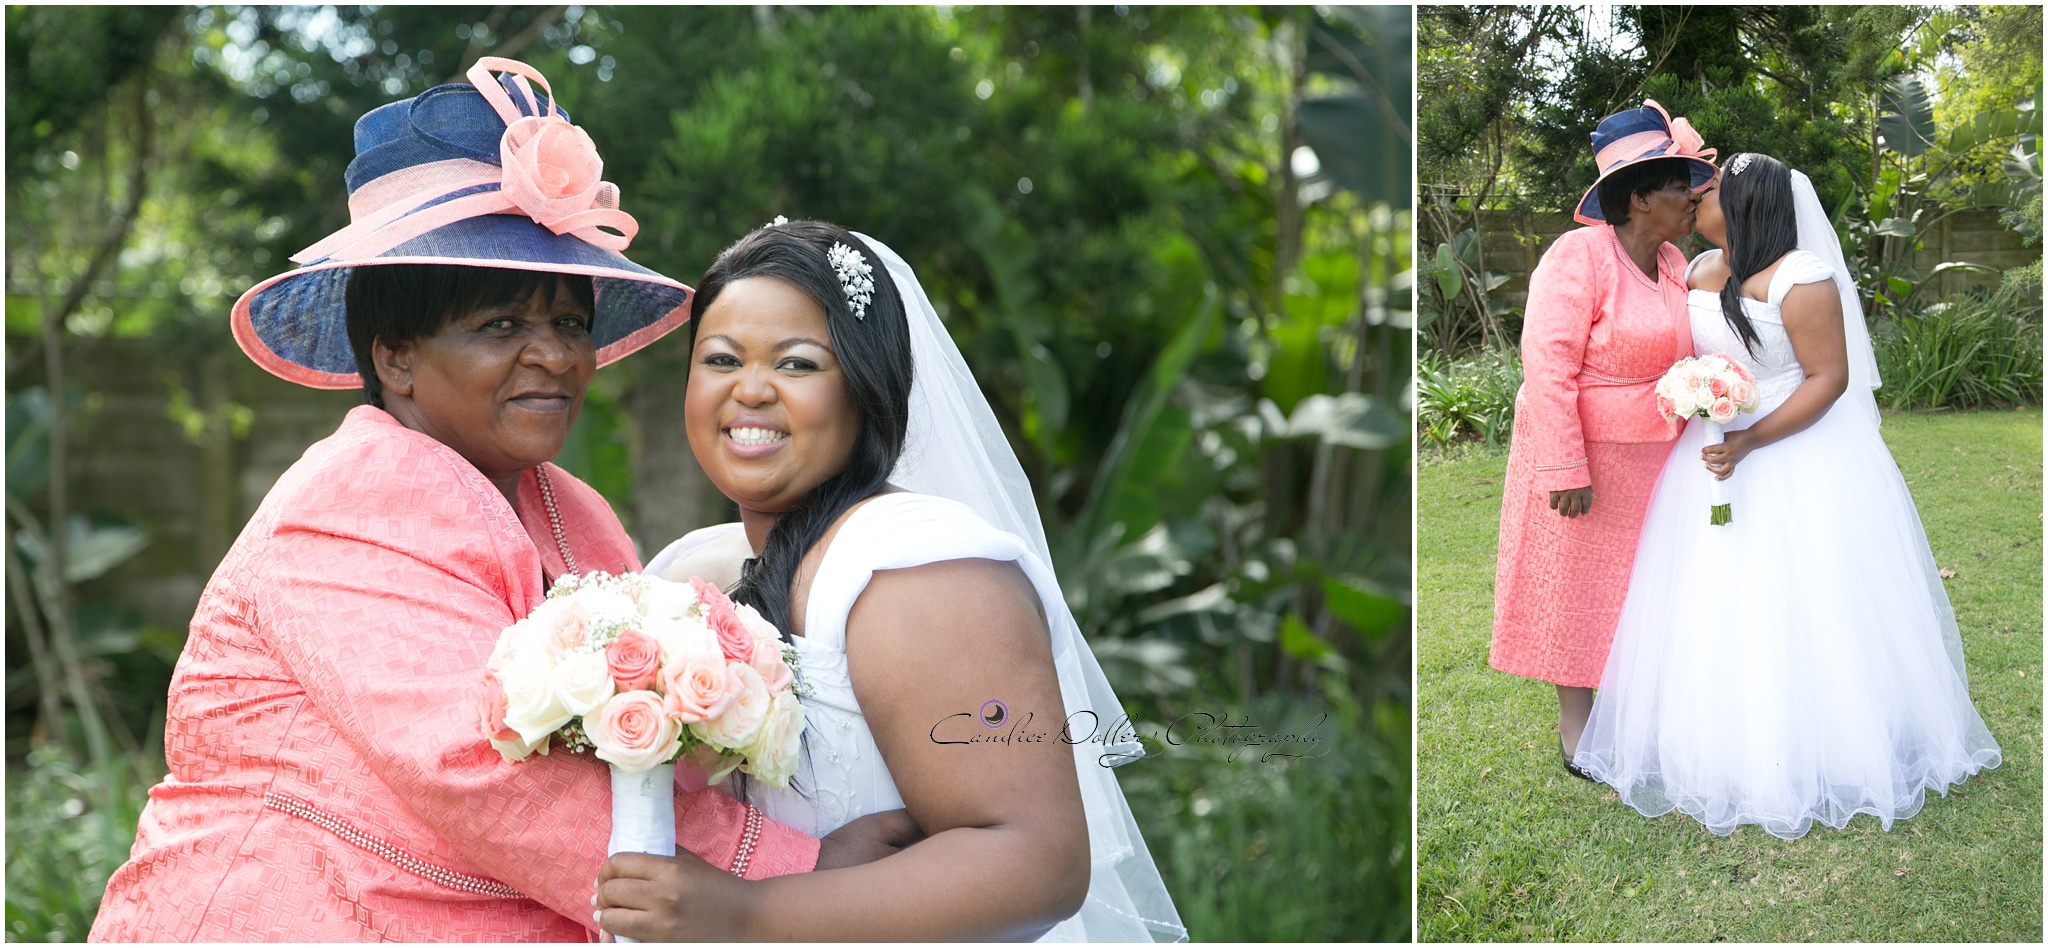 Wedding Gonubie Manor Thola & Phili-Candice Dollery Photograhy_4230